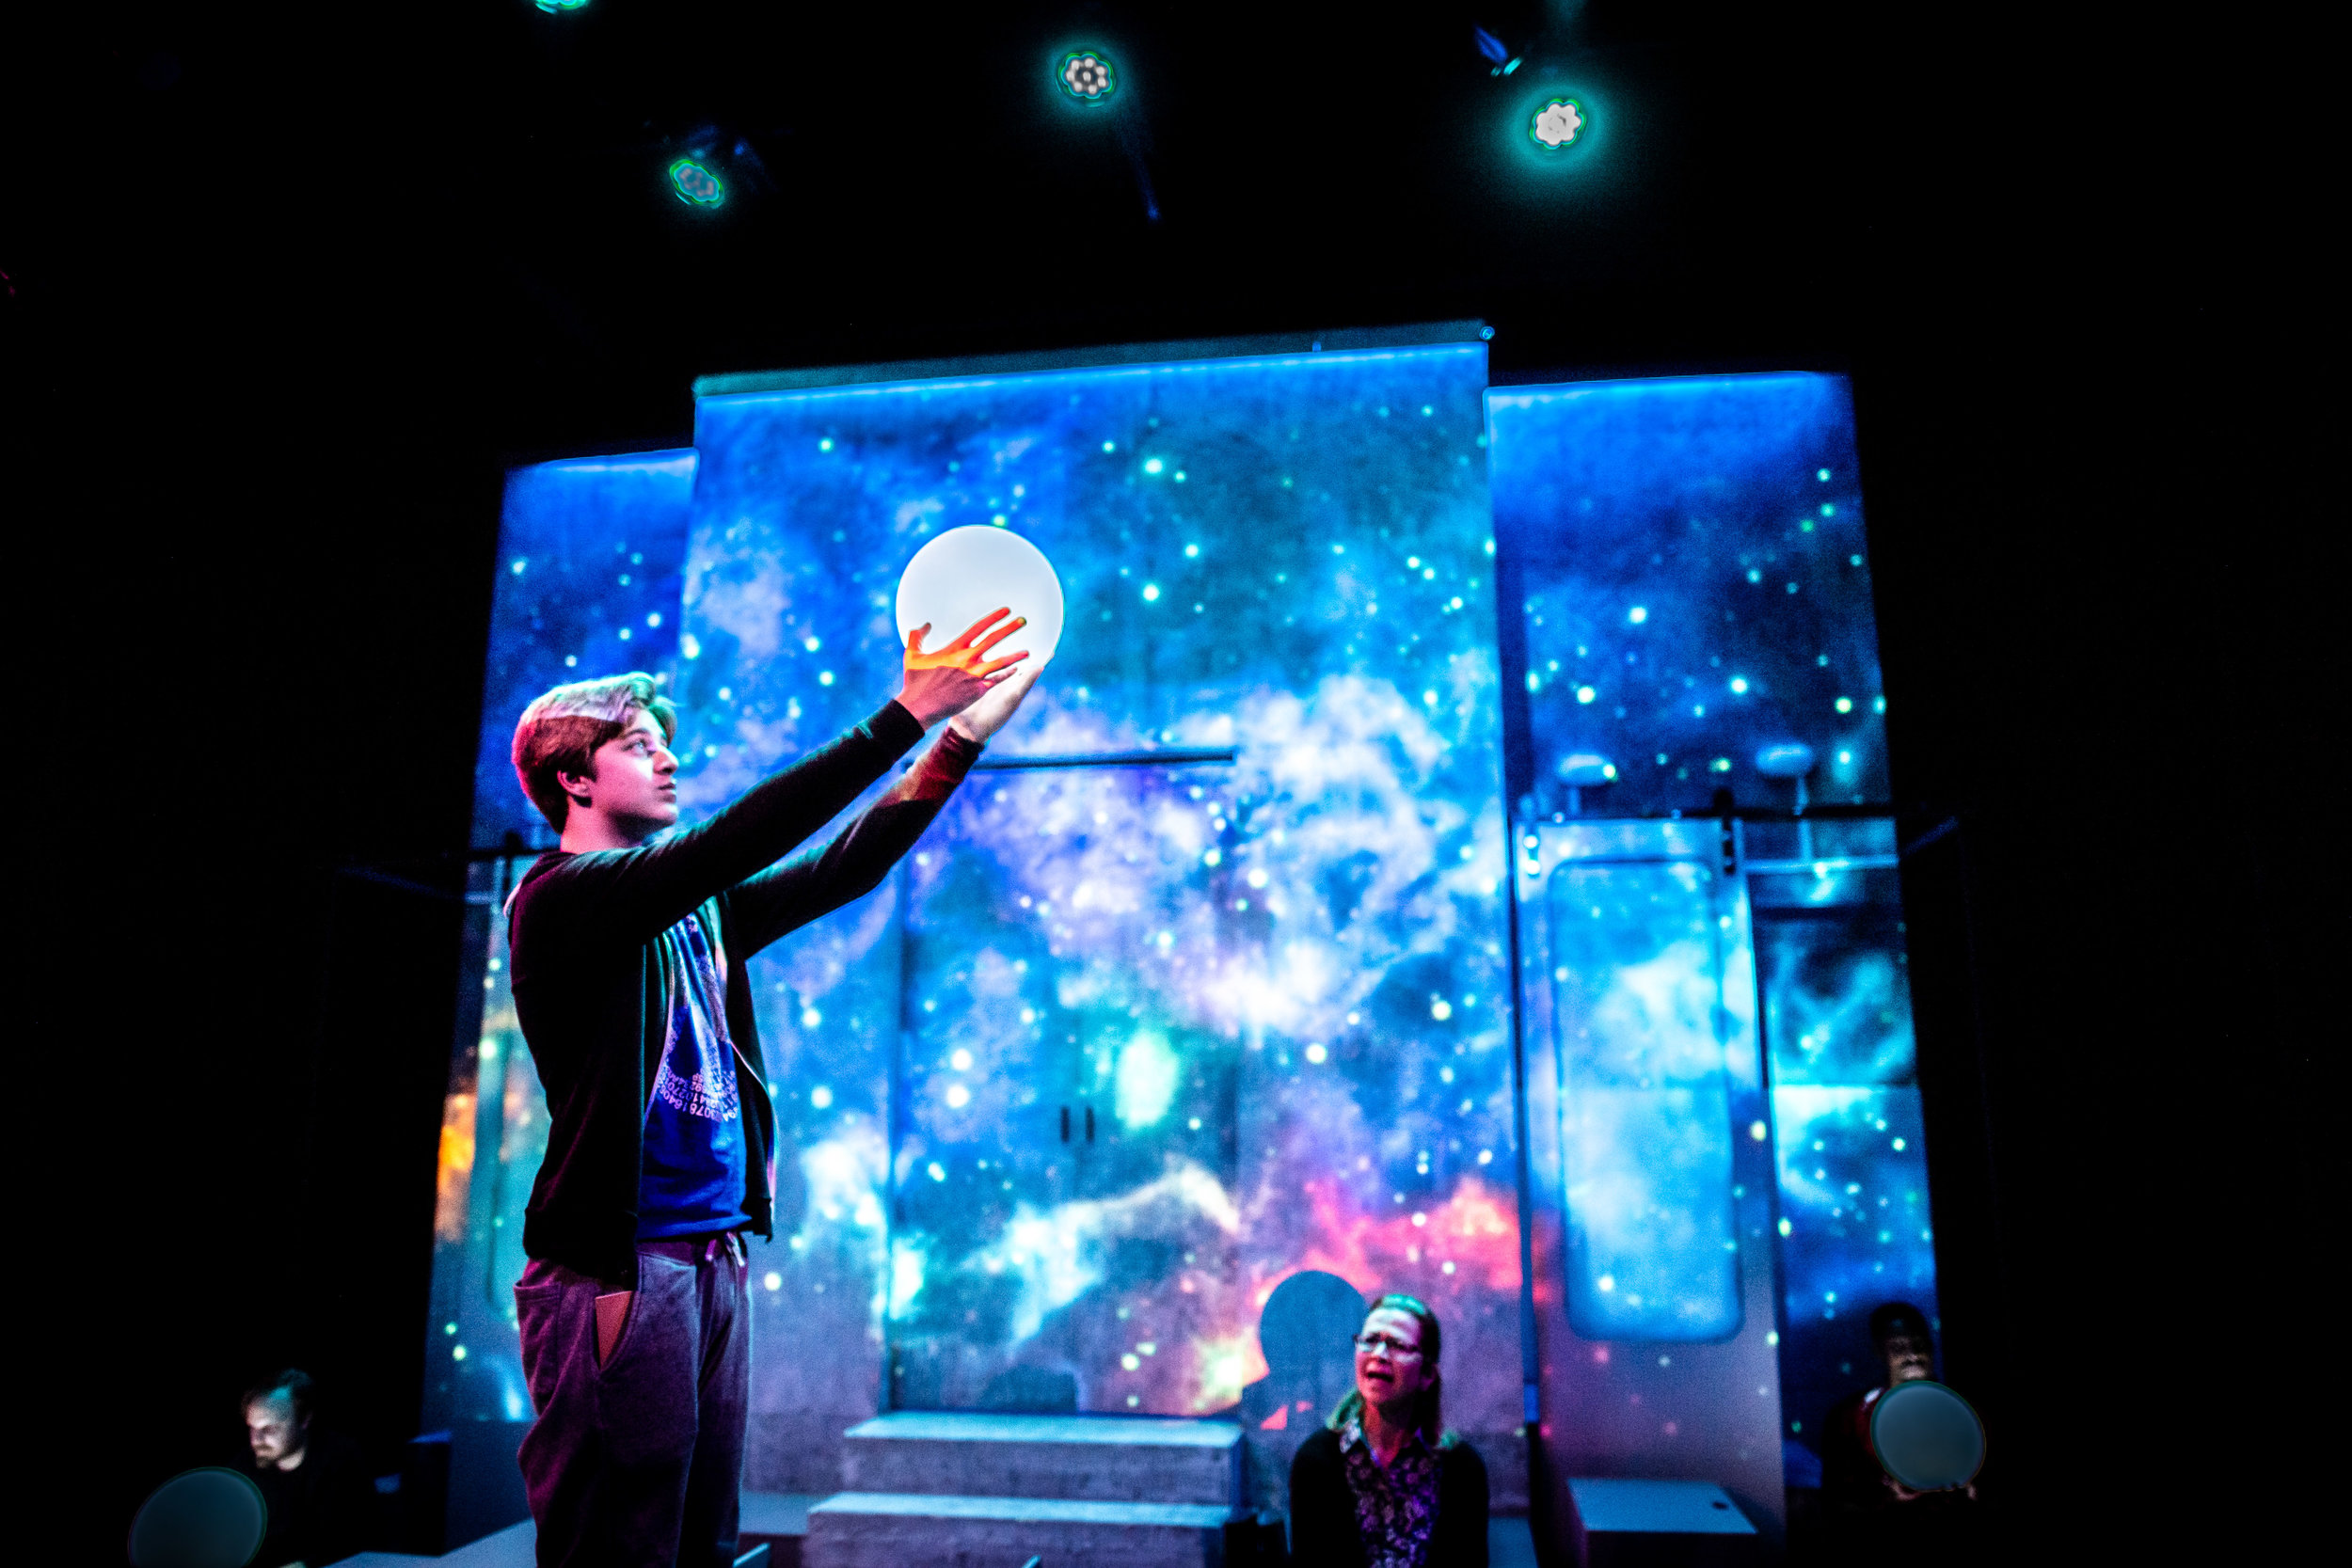 036-Yellow Tree Theatre-Curious Incident-Minneapolis theater photographer-www.jcoxphotography.com-September 10, 2019.jpg